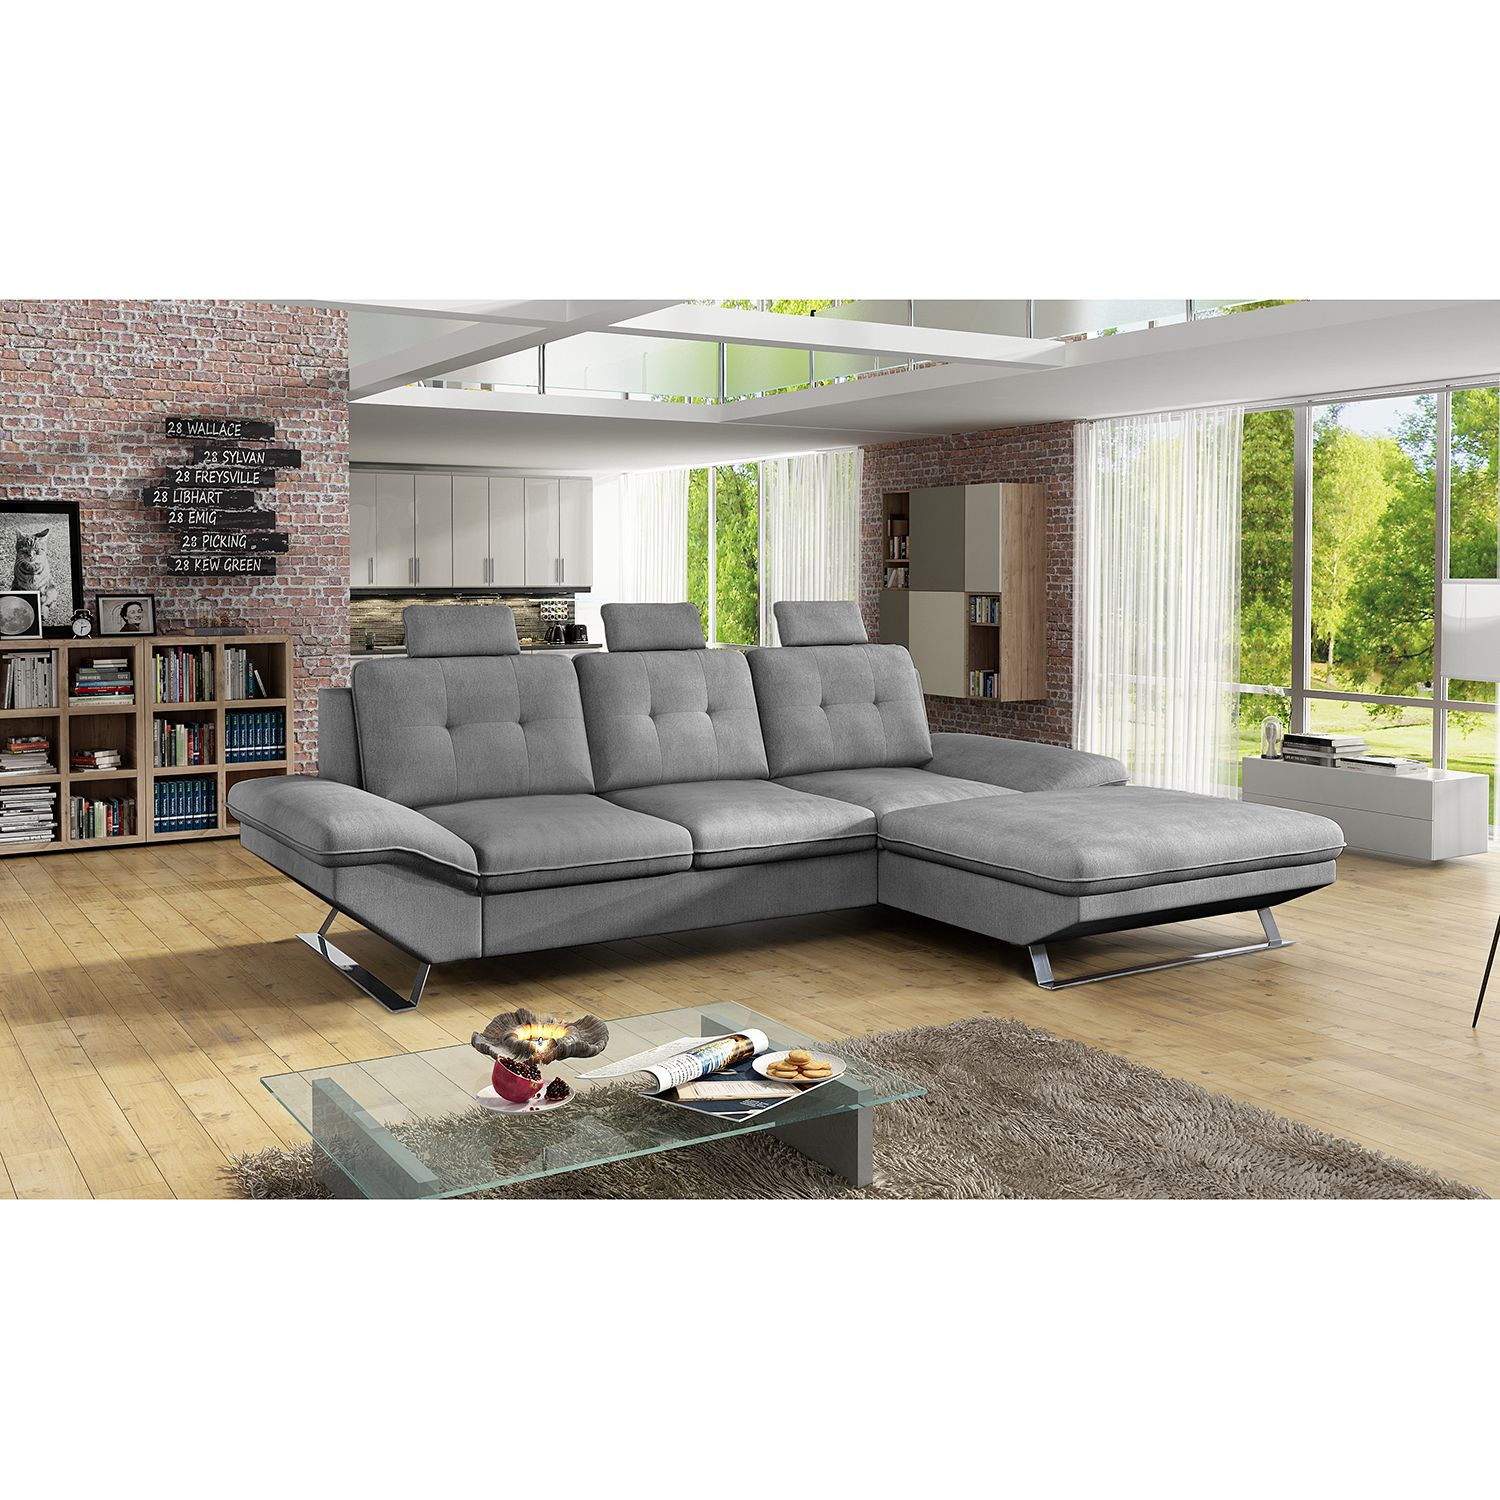 17 sparen ecksofa harmon mit schlaffunktion nur 999 99 cherry m bel home24. Black Bedroom Furniture Sets. Home Design Ideas